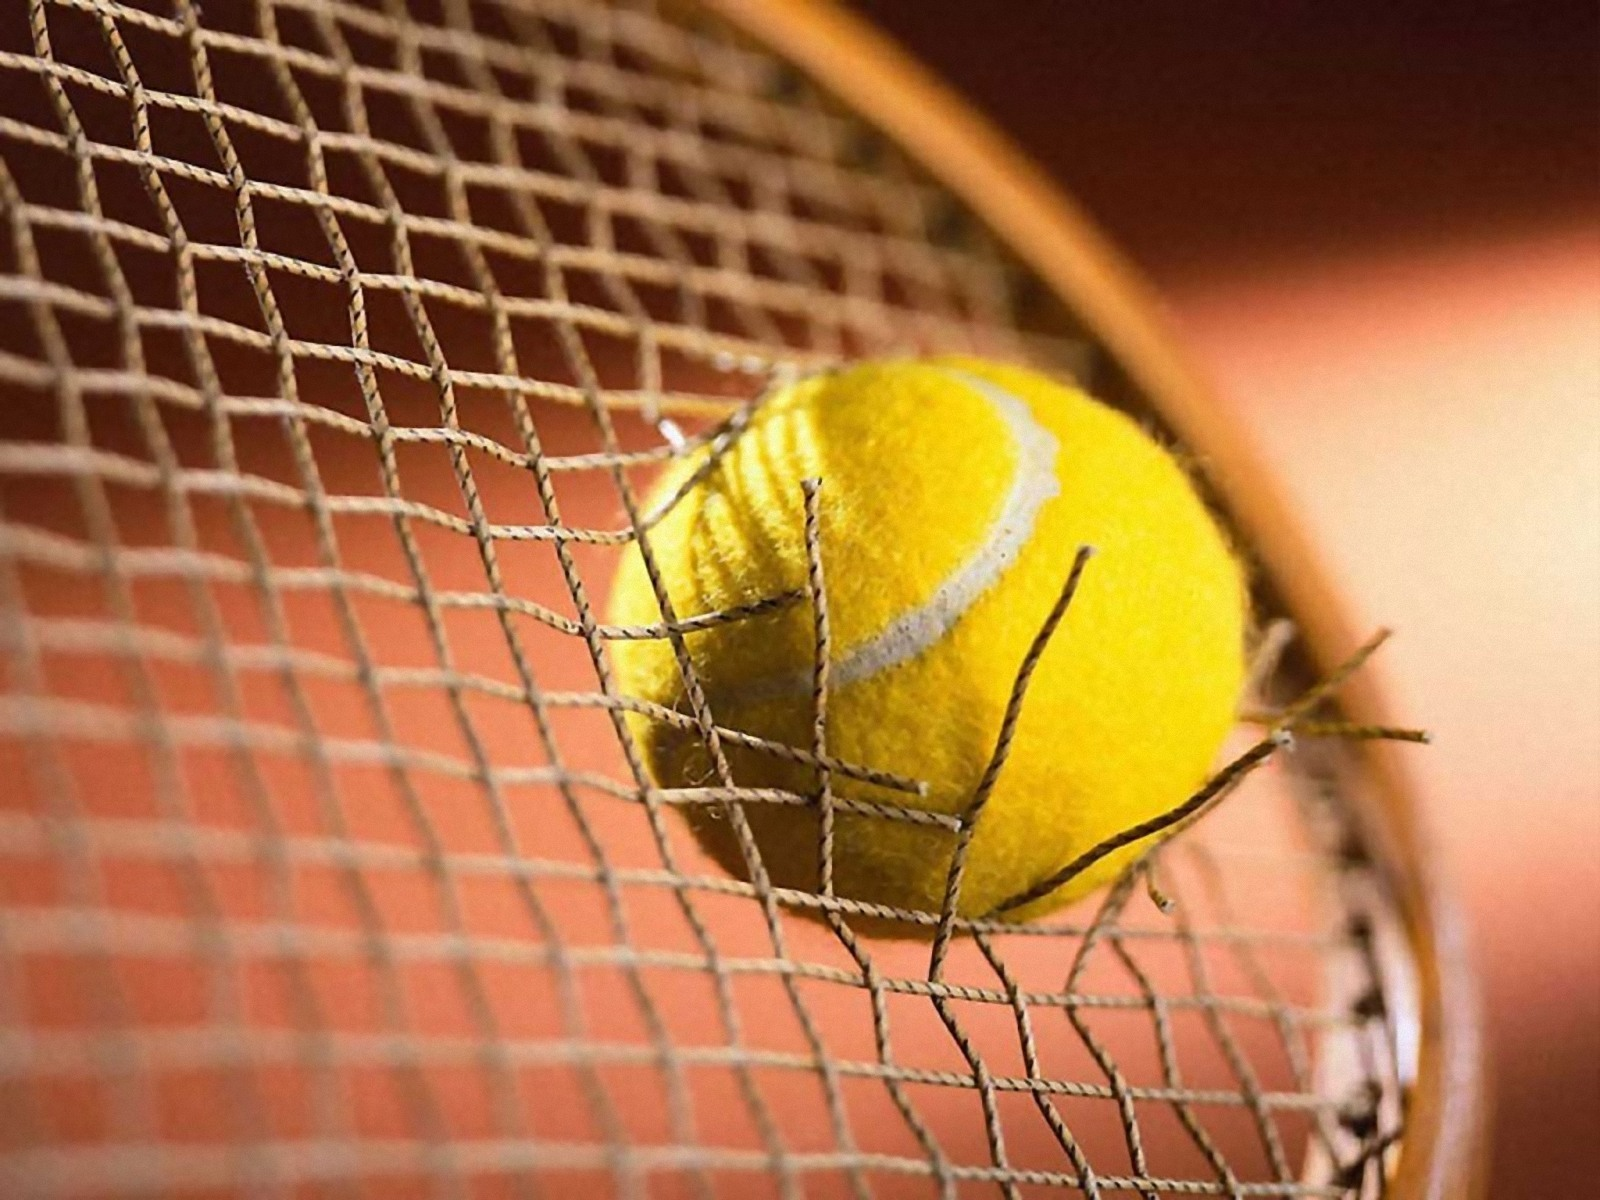 30 Best Tennis Wallpapers In High Quality Marjani Bradmore